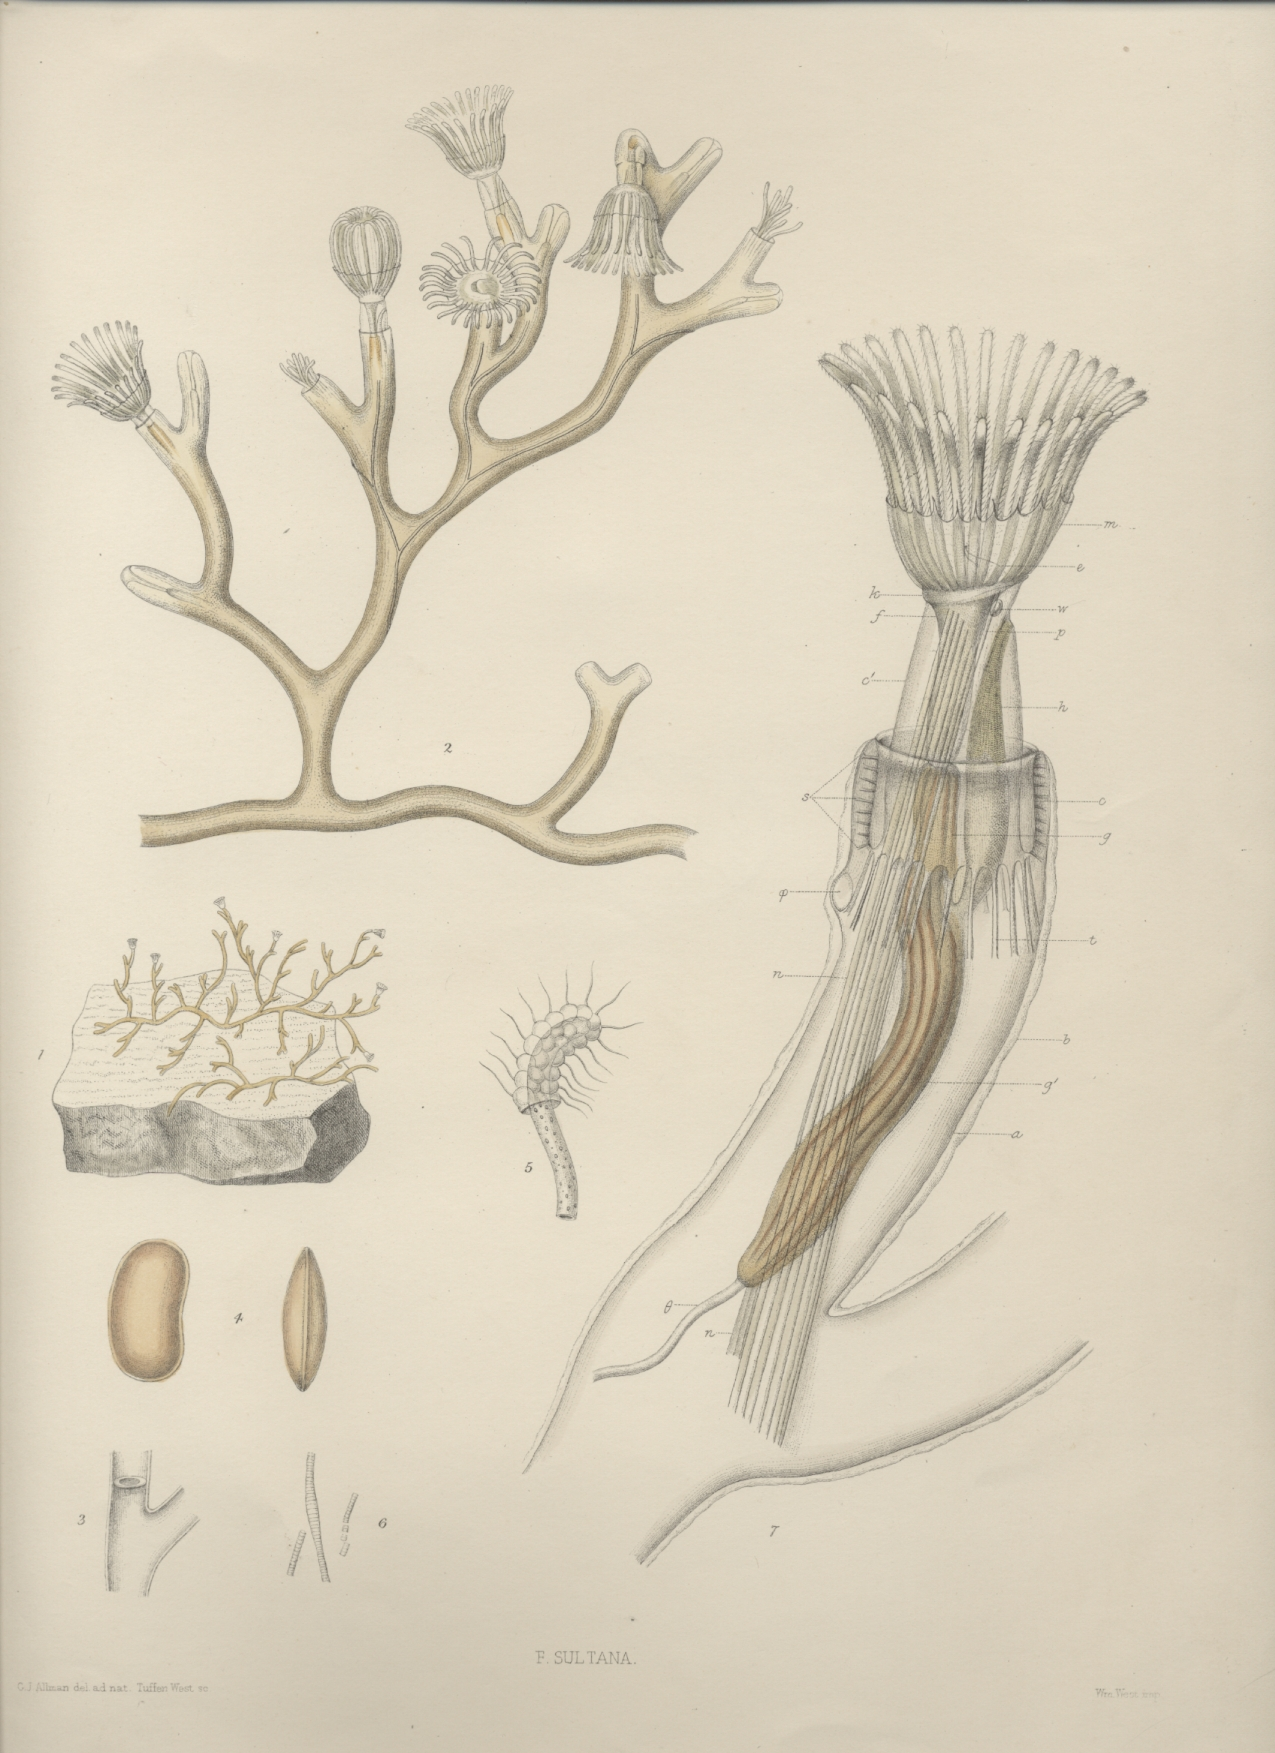 A monograph of the fresh-water polyzoa - plate 9